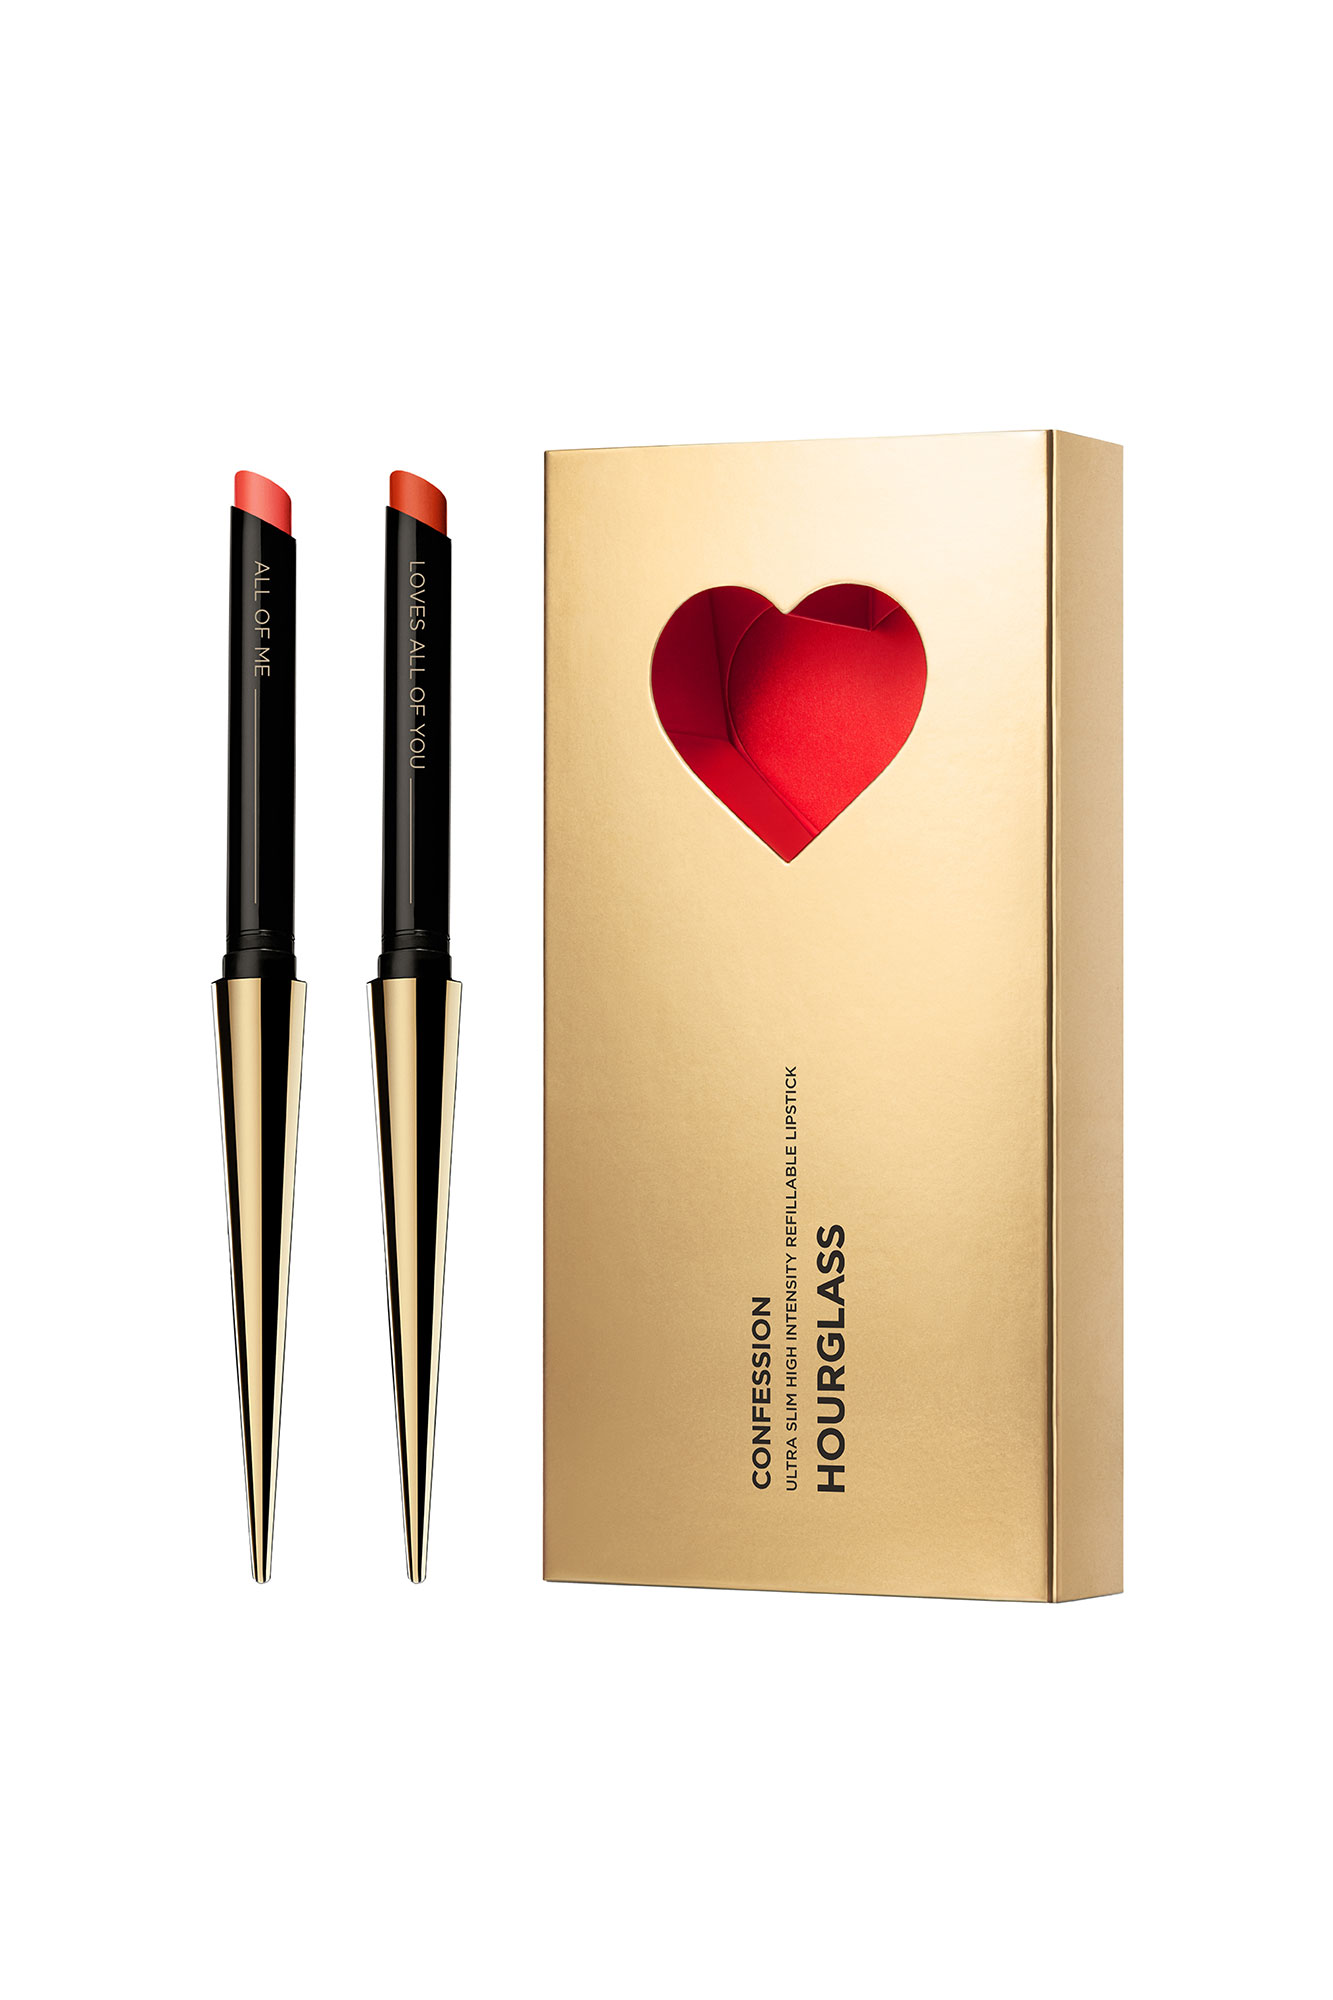 Valentine's Day Gift Guide 2019: Beauty and Fashion Ideas for the Lady in Your Life - A lipstick for any mood, this long-wearing duo contains one pink and one red shade in the sleekest heart-adorned (refillable!) gold applicators. $72, hourglasscosmetics.com beginning January 25